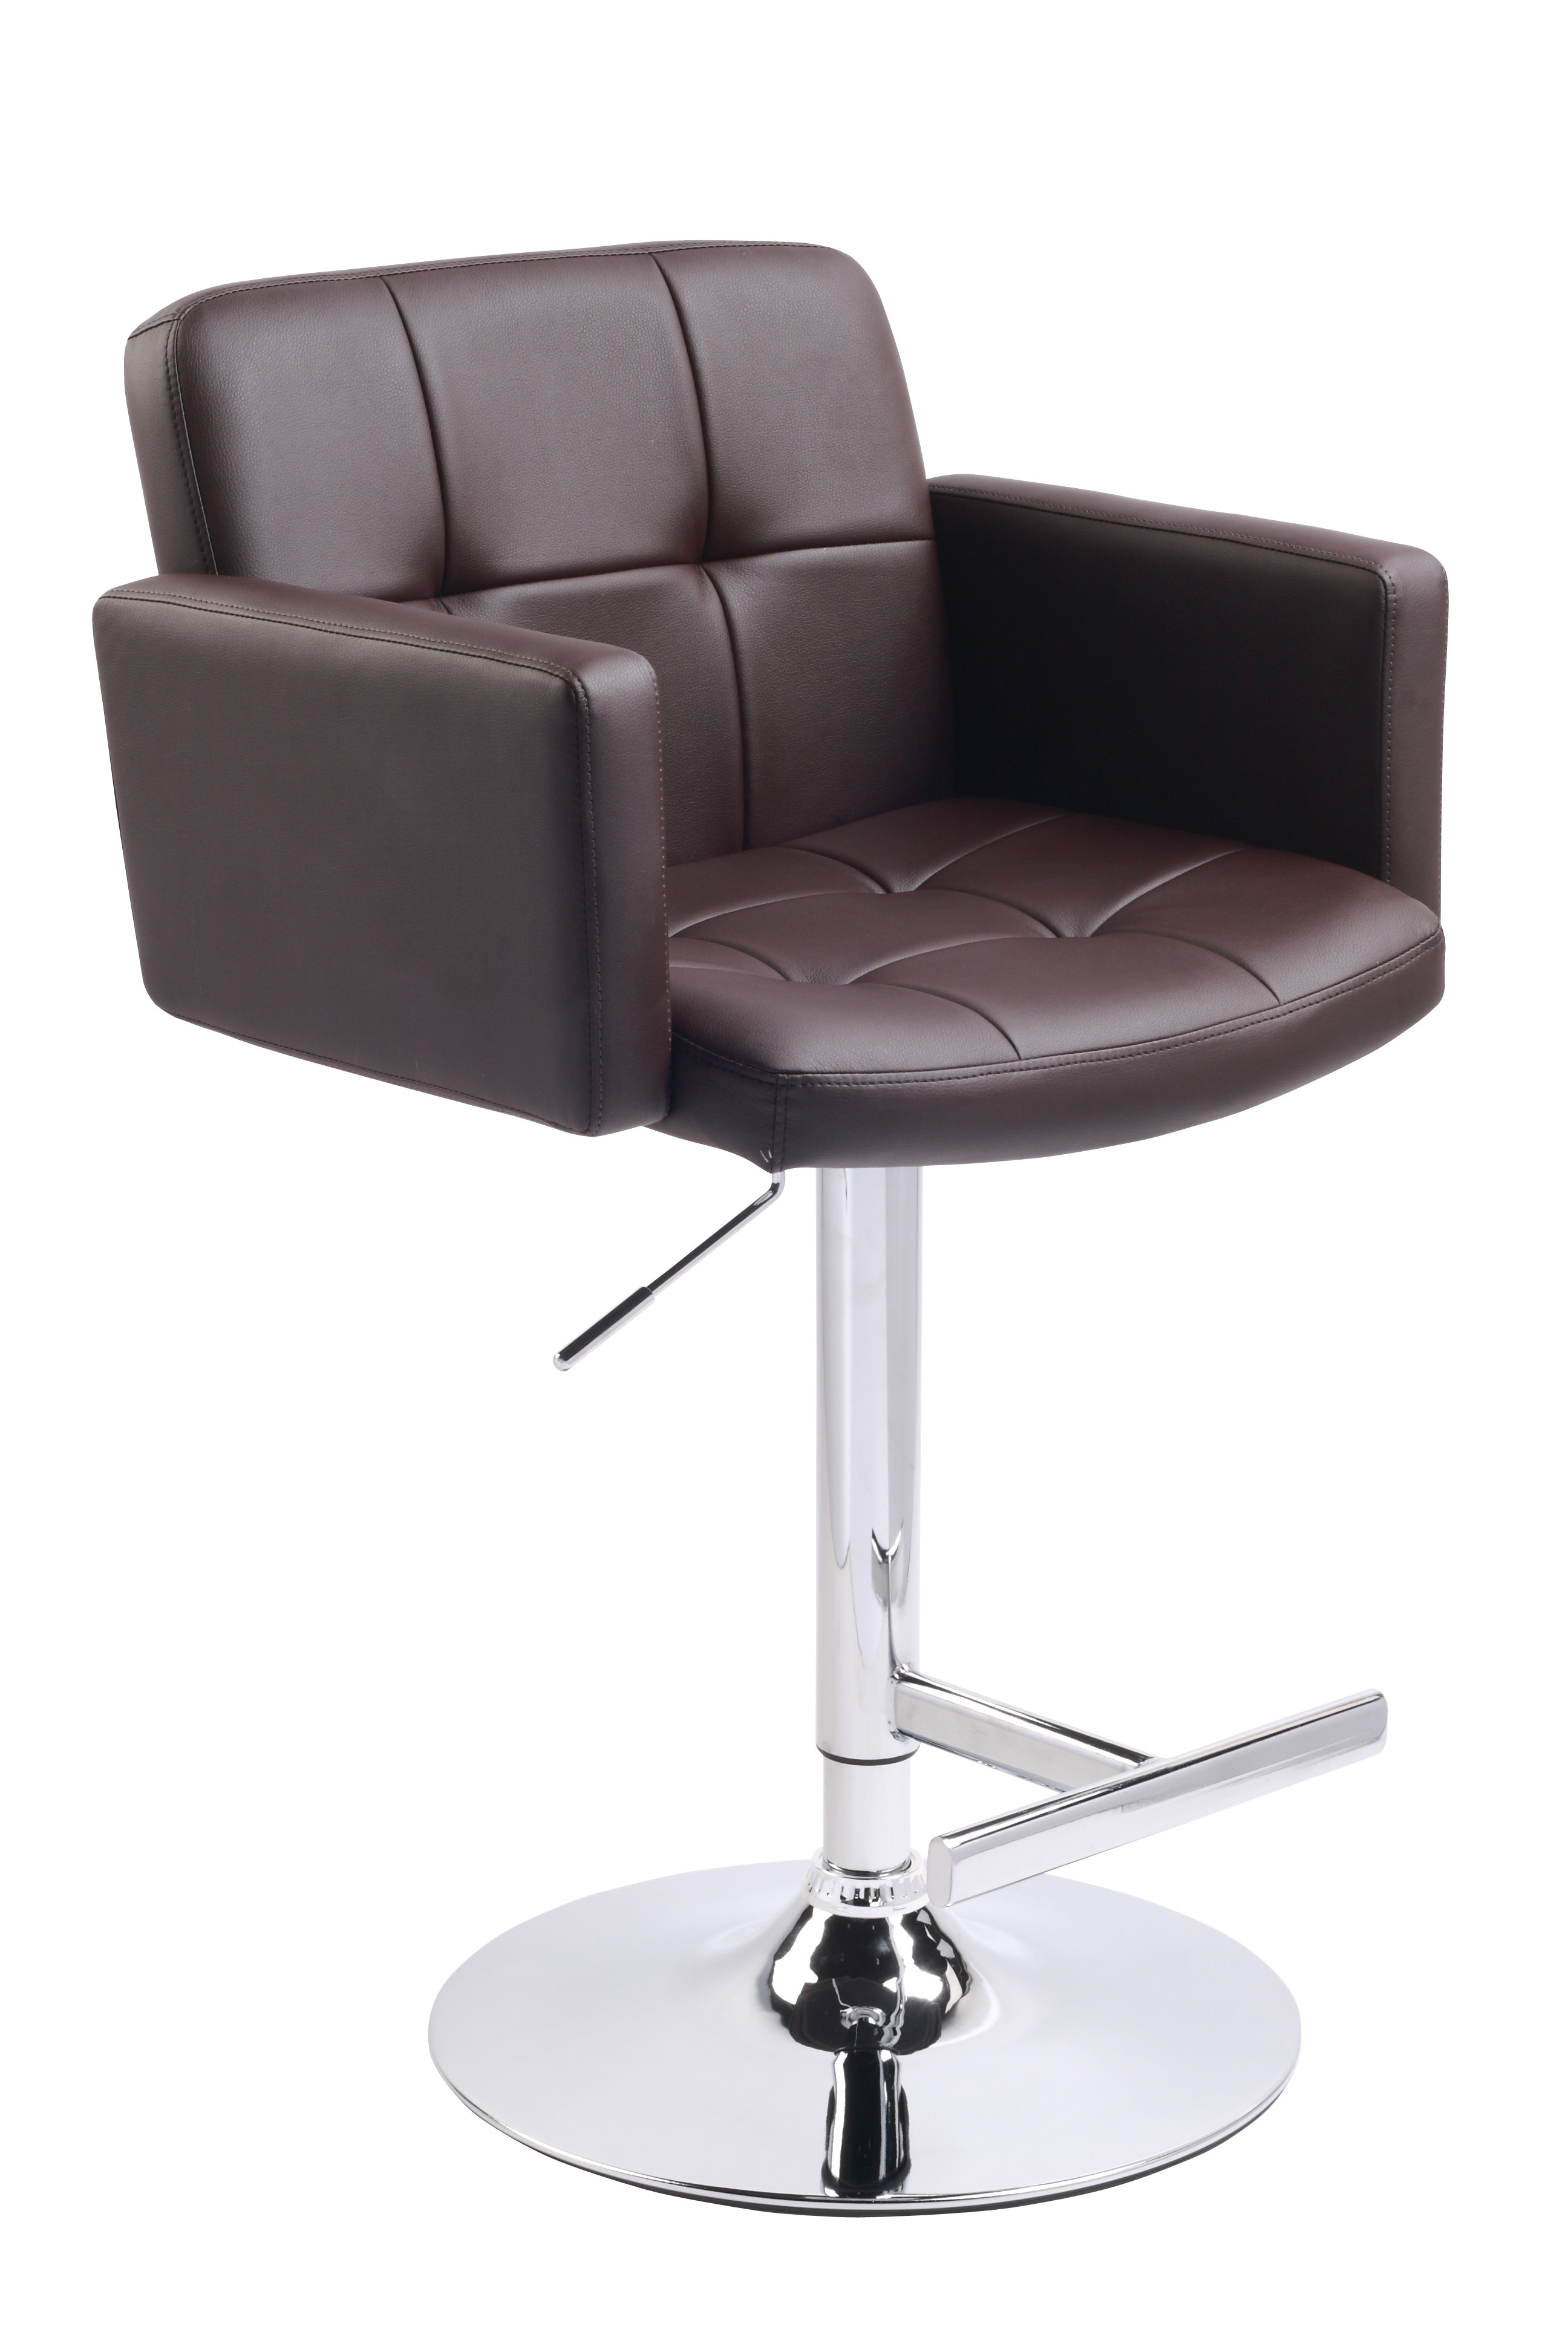 Take Note Of The Above Factors When Ping For Bar Stools You Have Finally Found Ideal That Suit Your Preferences And Home